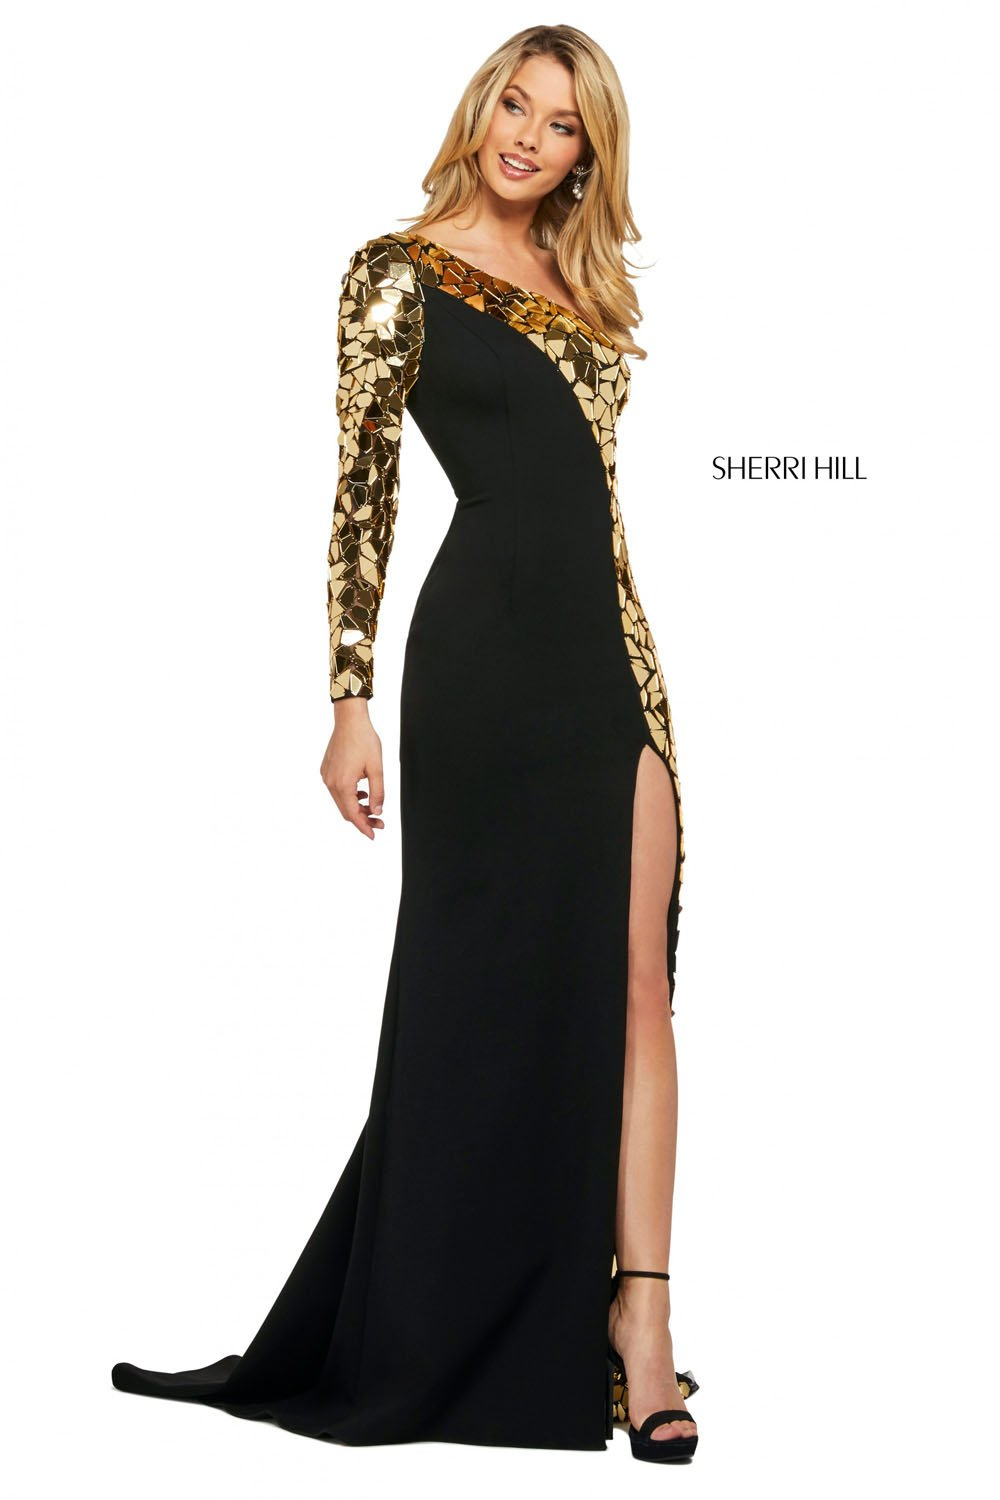 Sherri Hill 53467 prom dress images.  Sherri Hill 53467 is available in these colors: Ivory Silver, Black Multi, Black Gold, Black Silver.